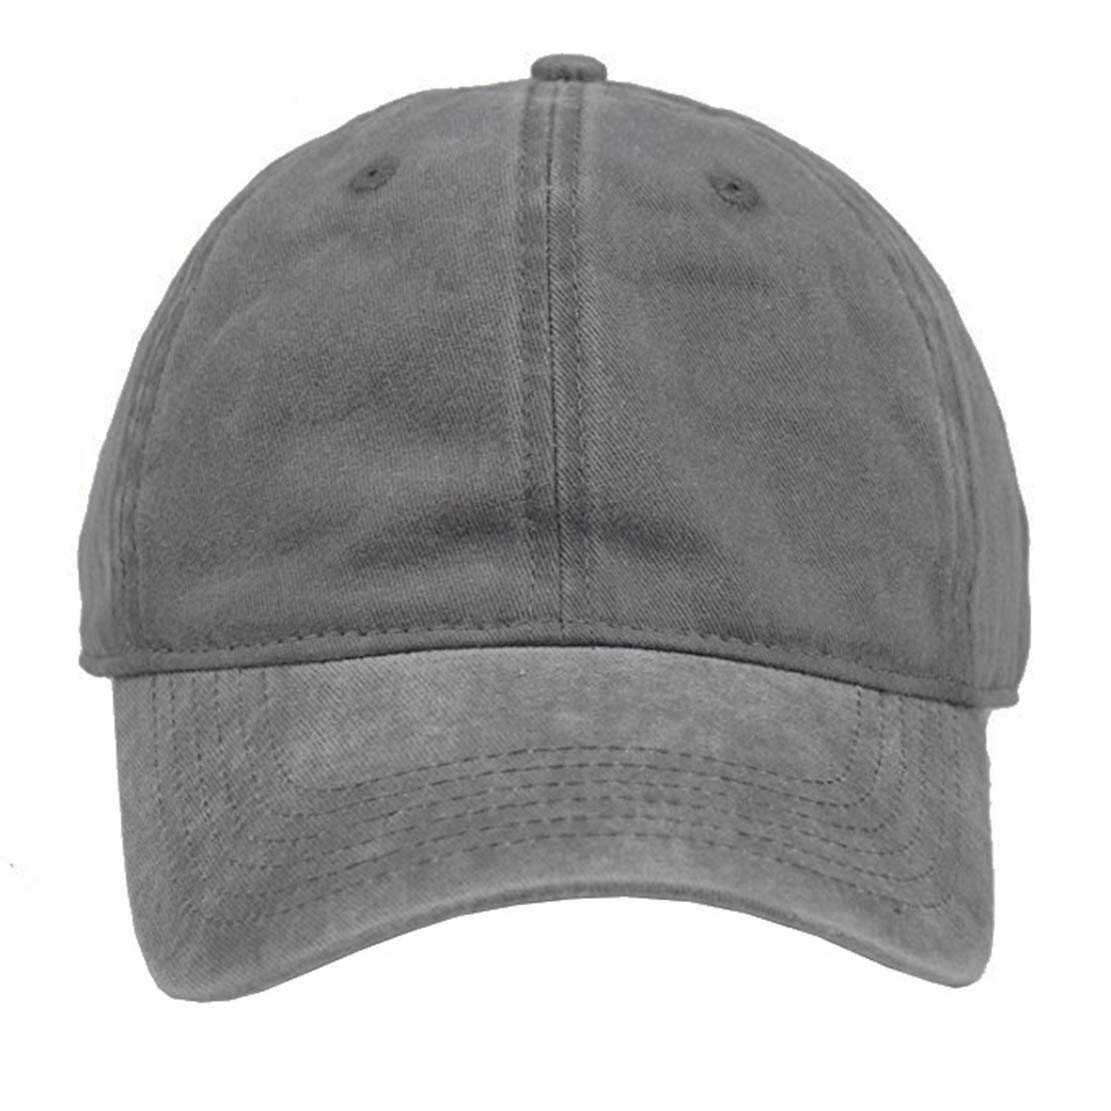 Eohak Kids Distresed-Washed Baseball Hat Infant Toddler Baby Boy Cotton Hats Distresed for 2-8 Years